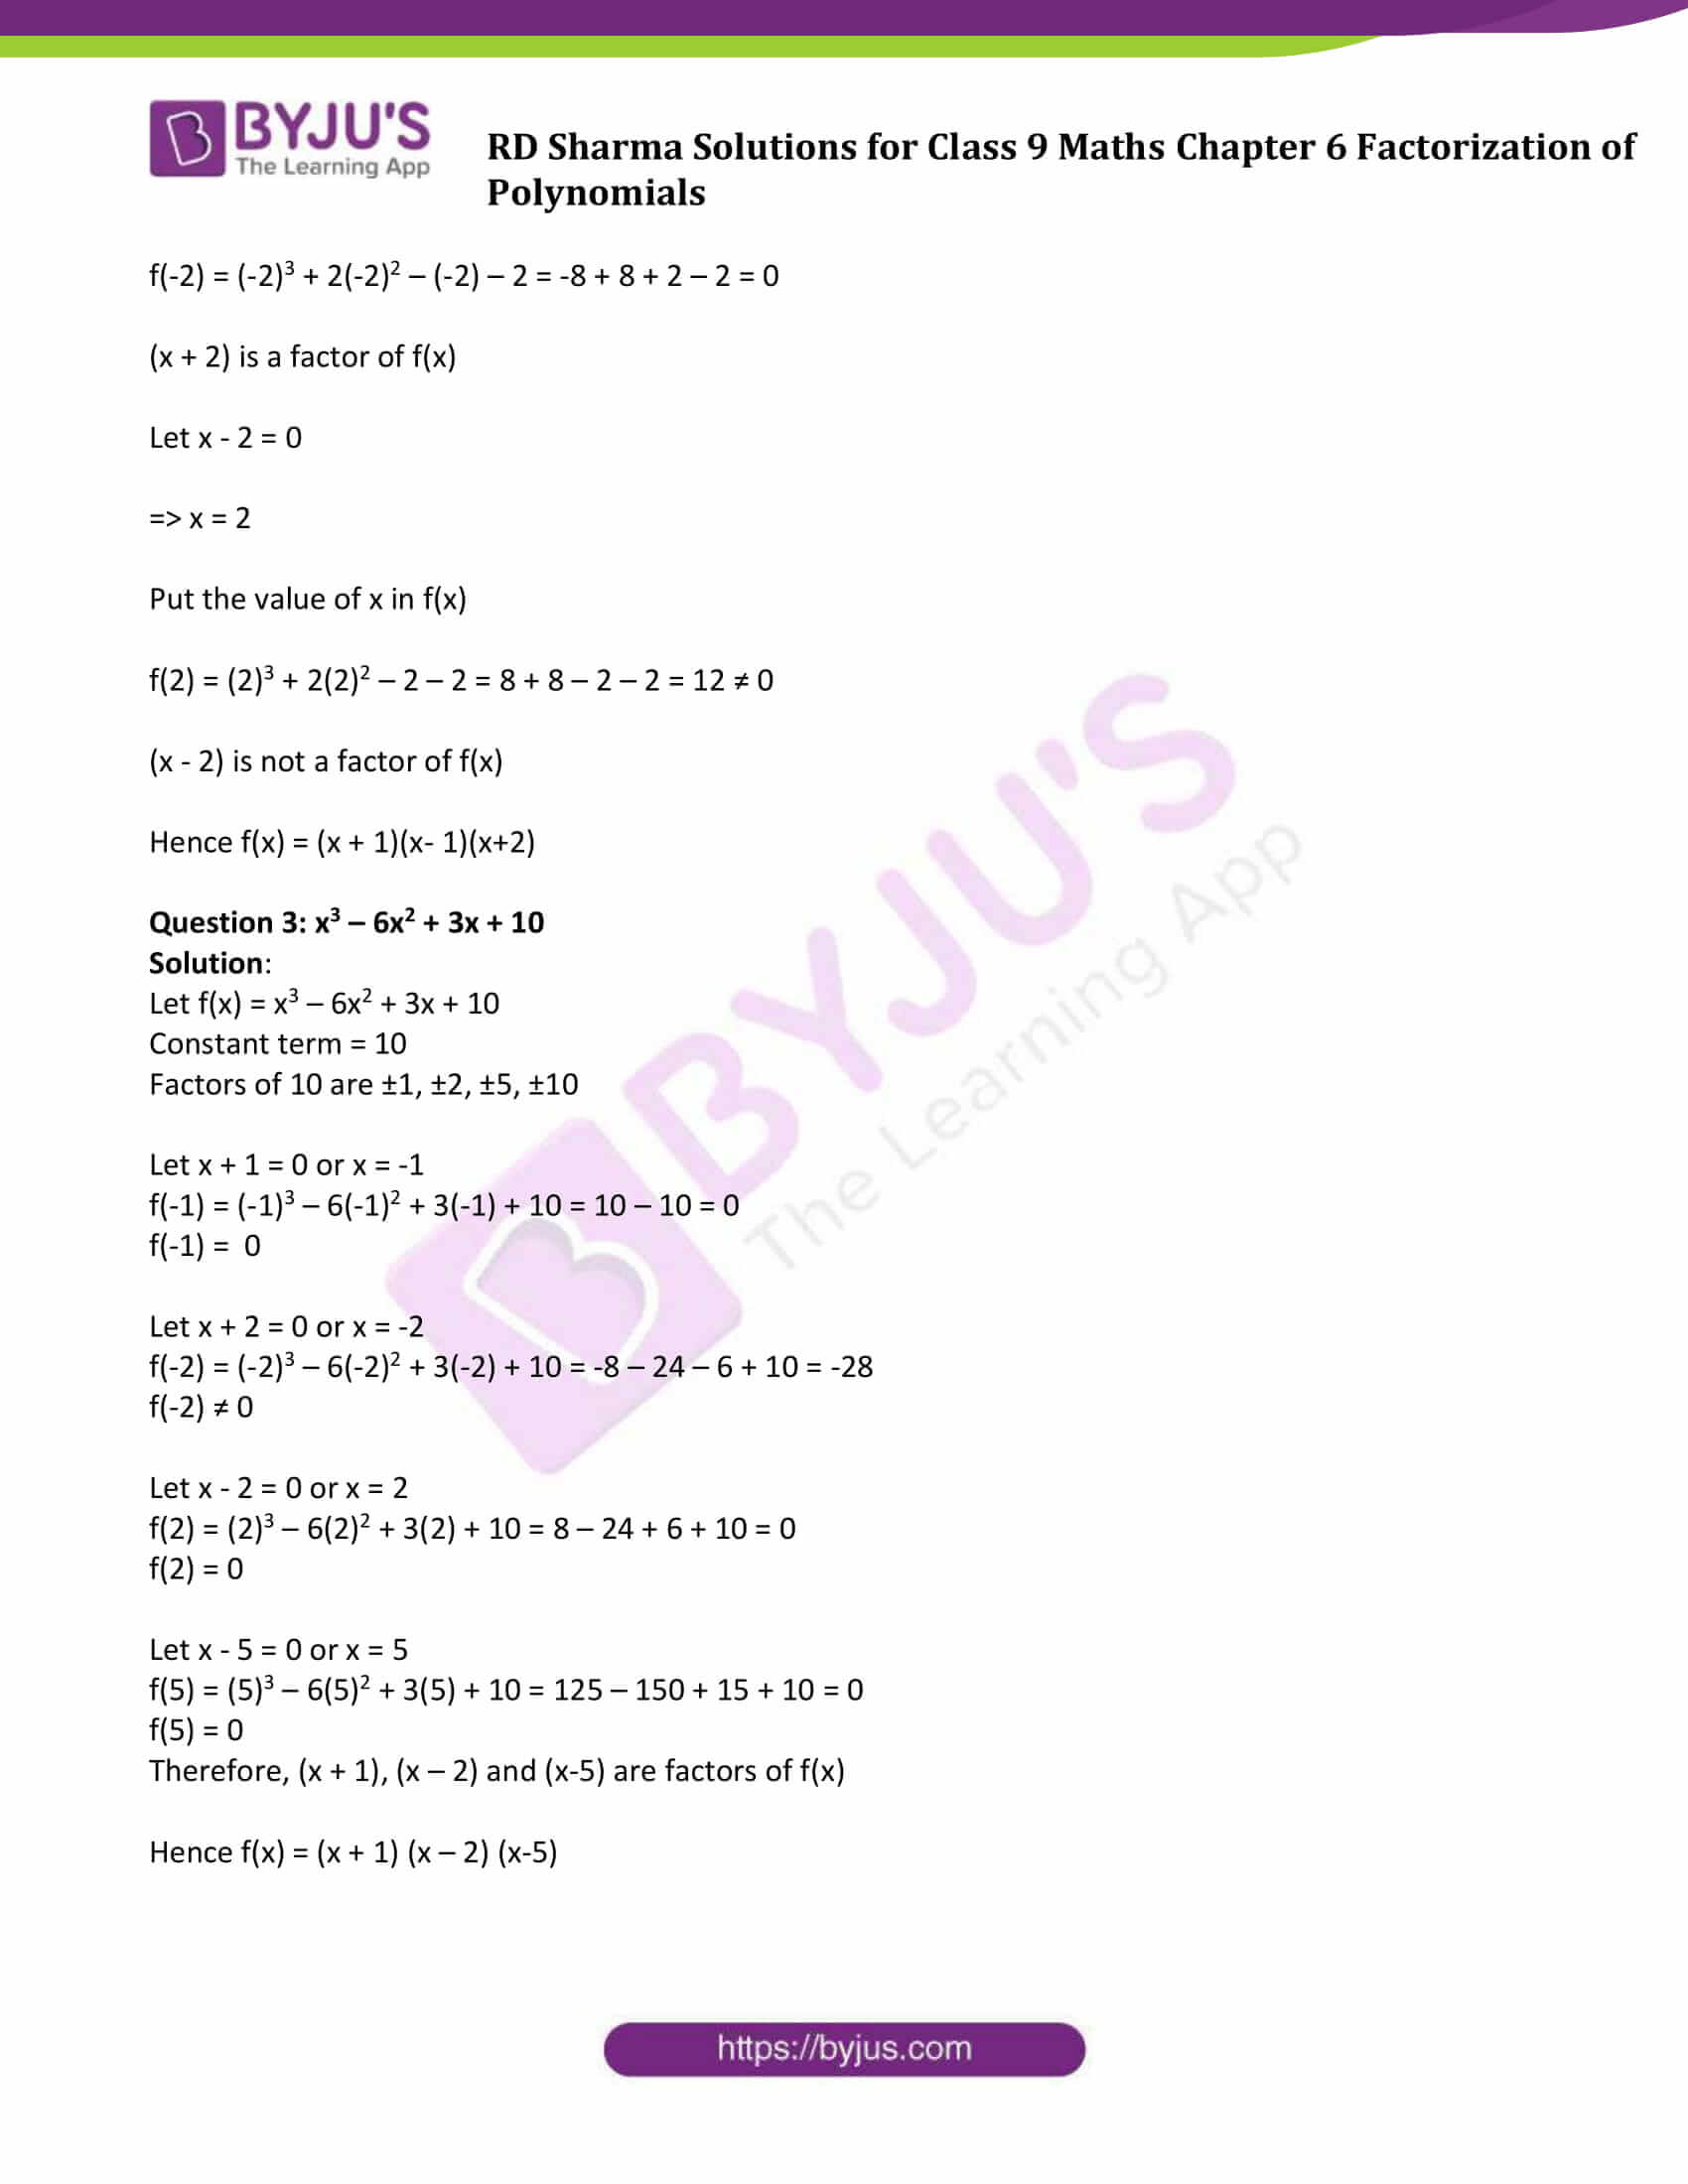 RD Sharma Solution class 9 Maths Chapter 6 Factorization of Polynomials 20